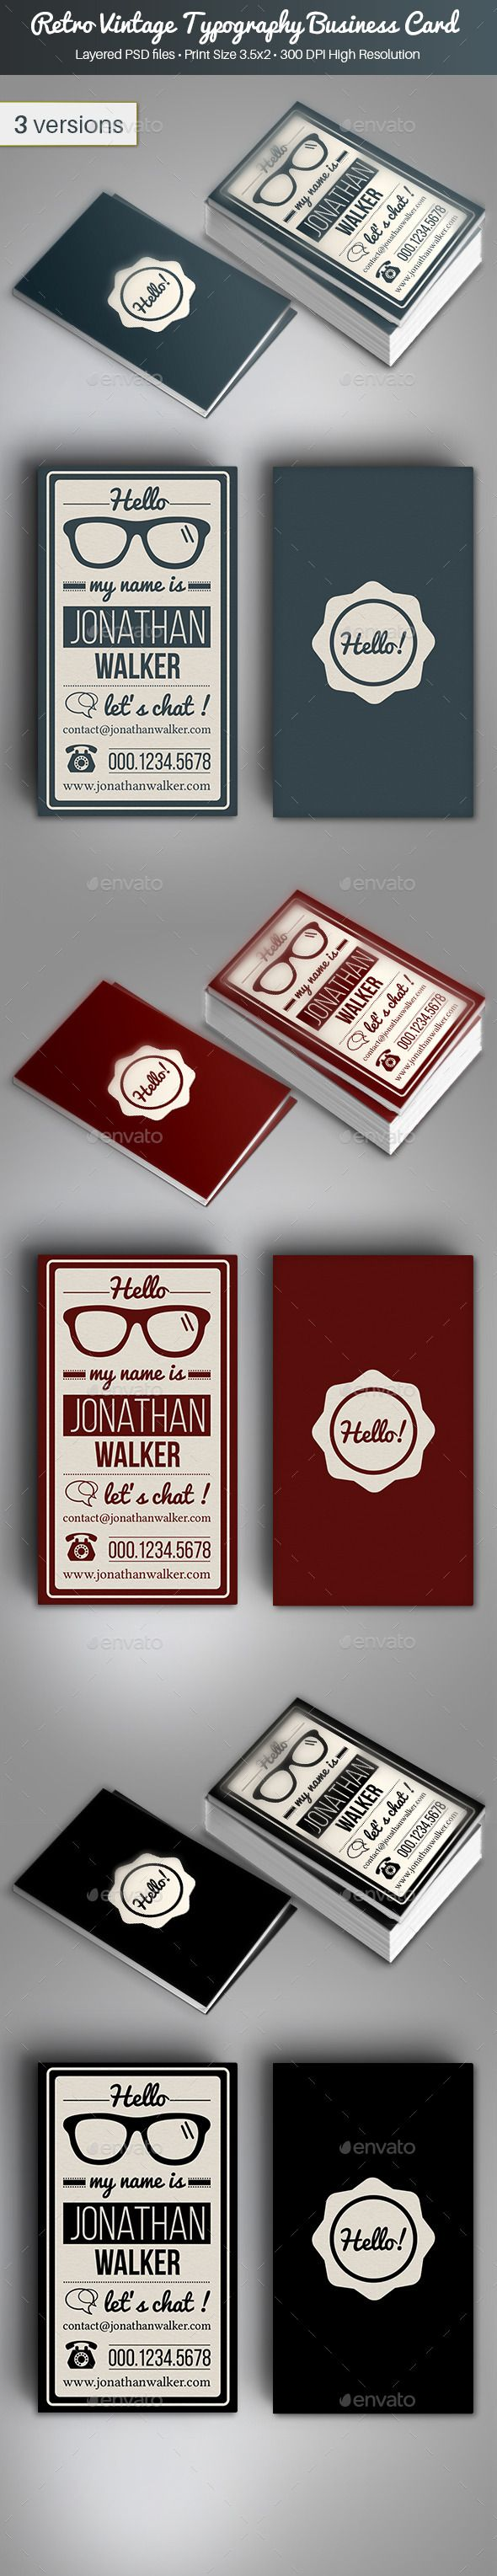 Best Business Card Templates Ideas On Pinterest Business - Buy business card template